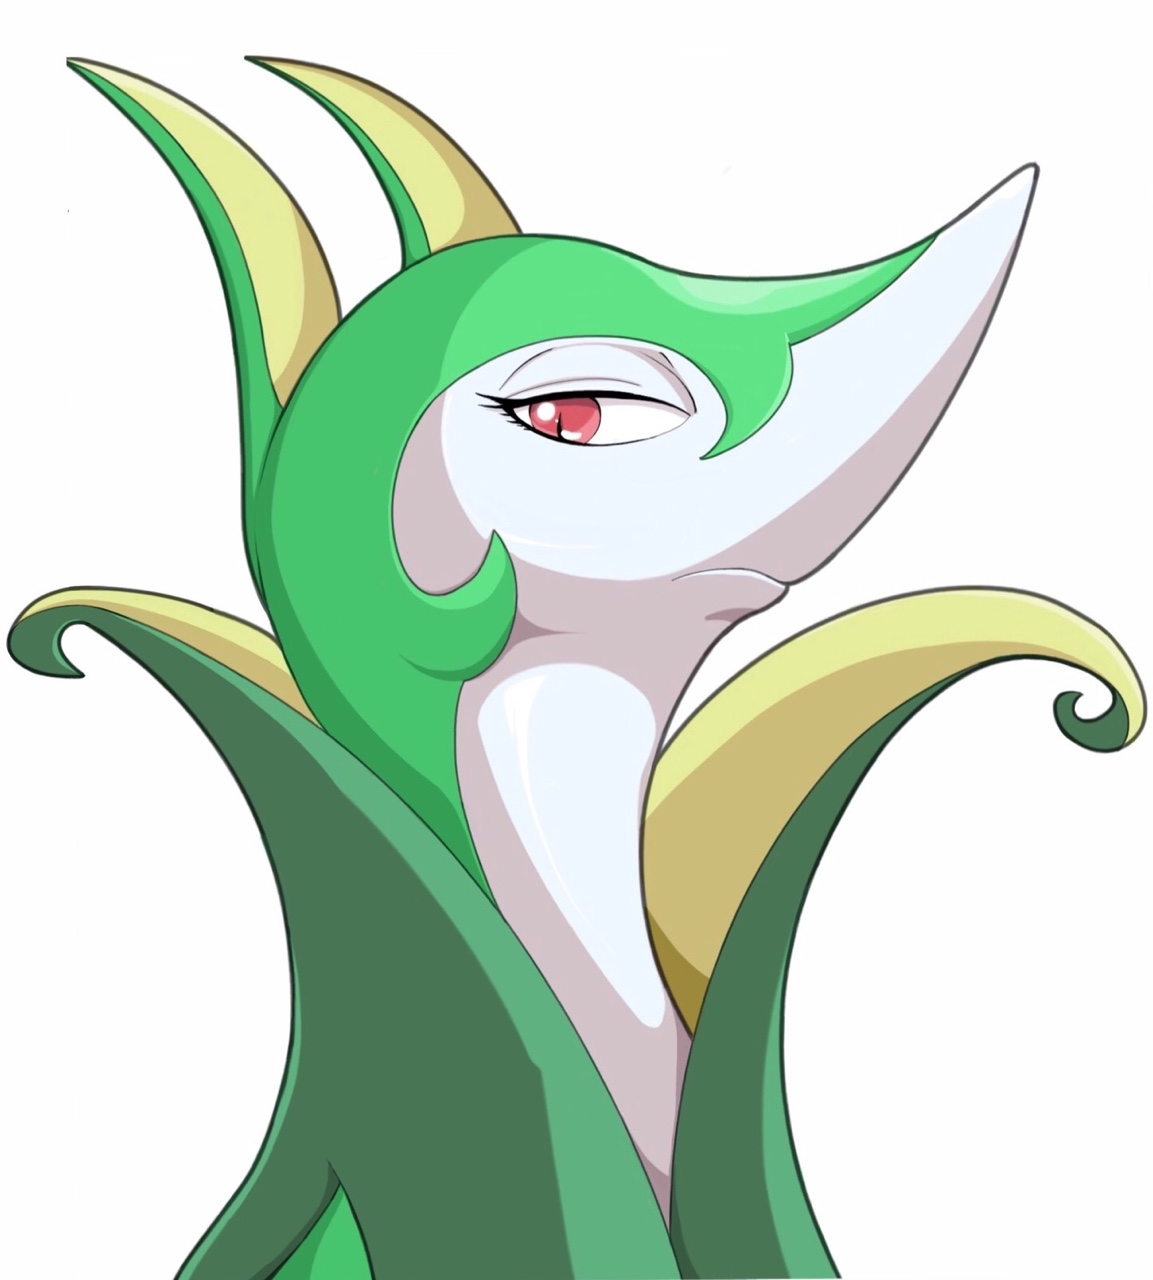 e621 ambiguous_gender feral hi_res hurikata looking_at_viewer nintendo pokémon red_eyes serperior simple_background slit_pupils solo video_games